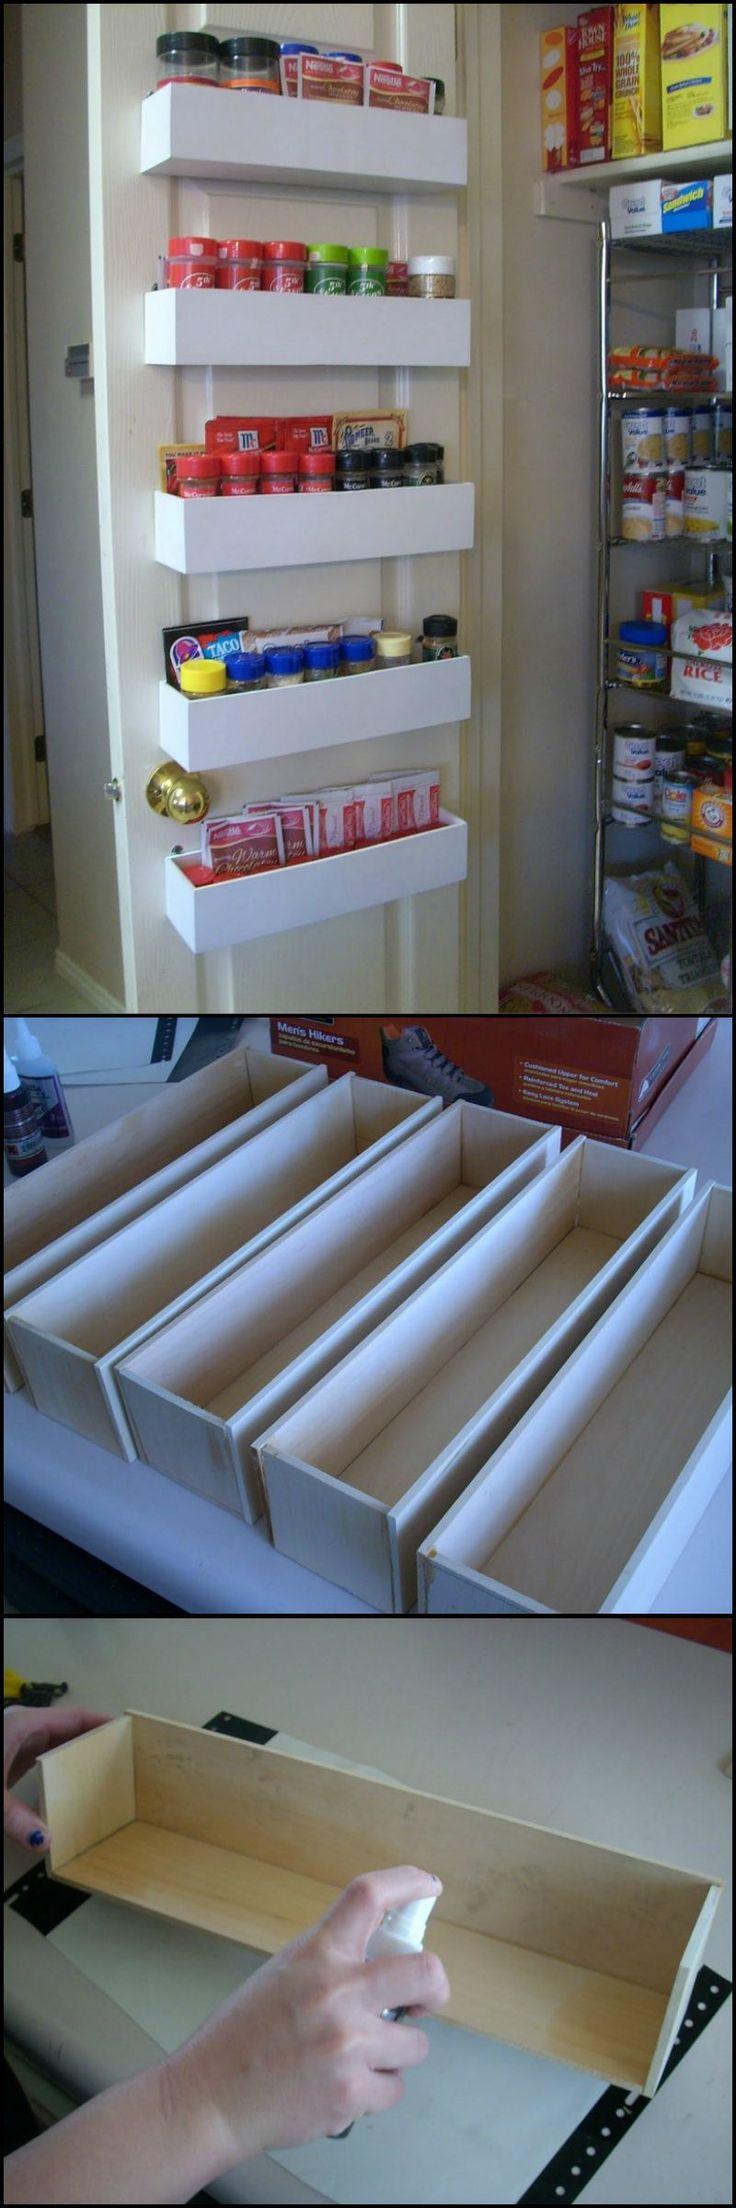 A full album on how to build a DIY pantry door spice rack. & Best 20+ Pantry door rack ideas on Pinterest | Kitchen spice racks ... Pezcame.Com